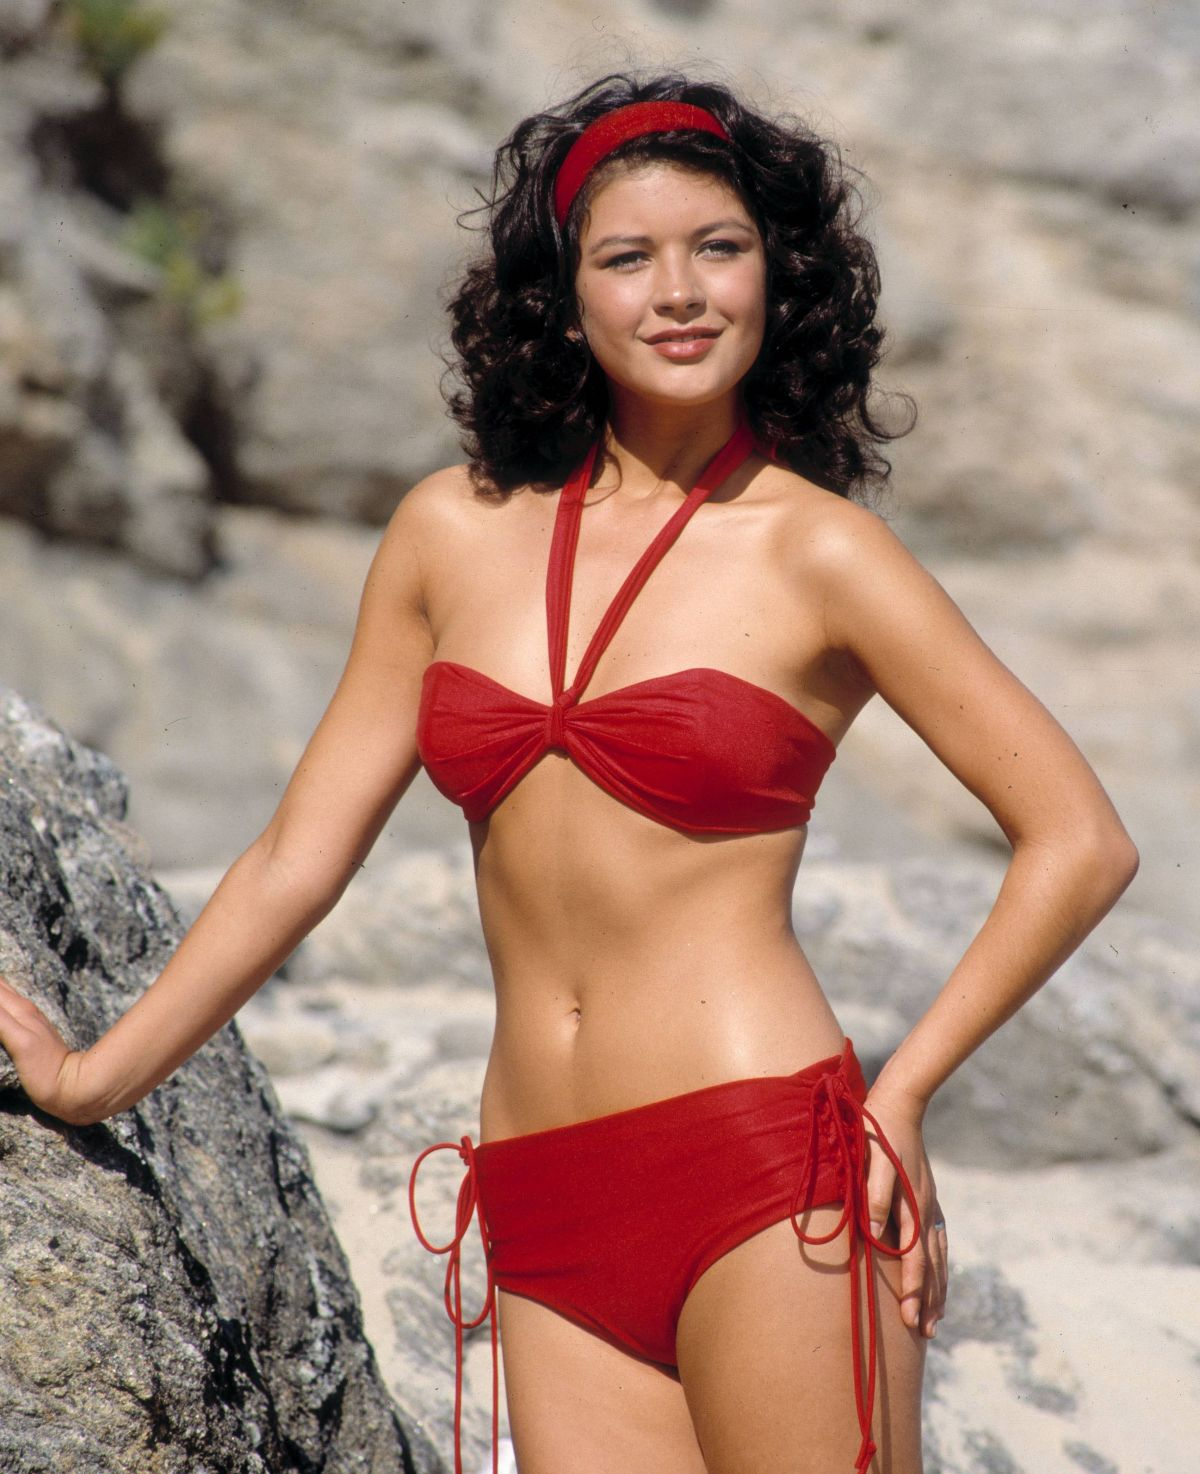 Best from the Past - CATHERINE ZETA JONES - The Darling Buds of May, 1991-1993